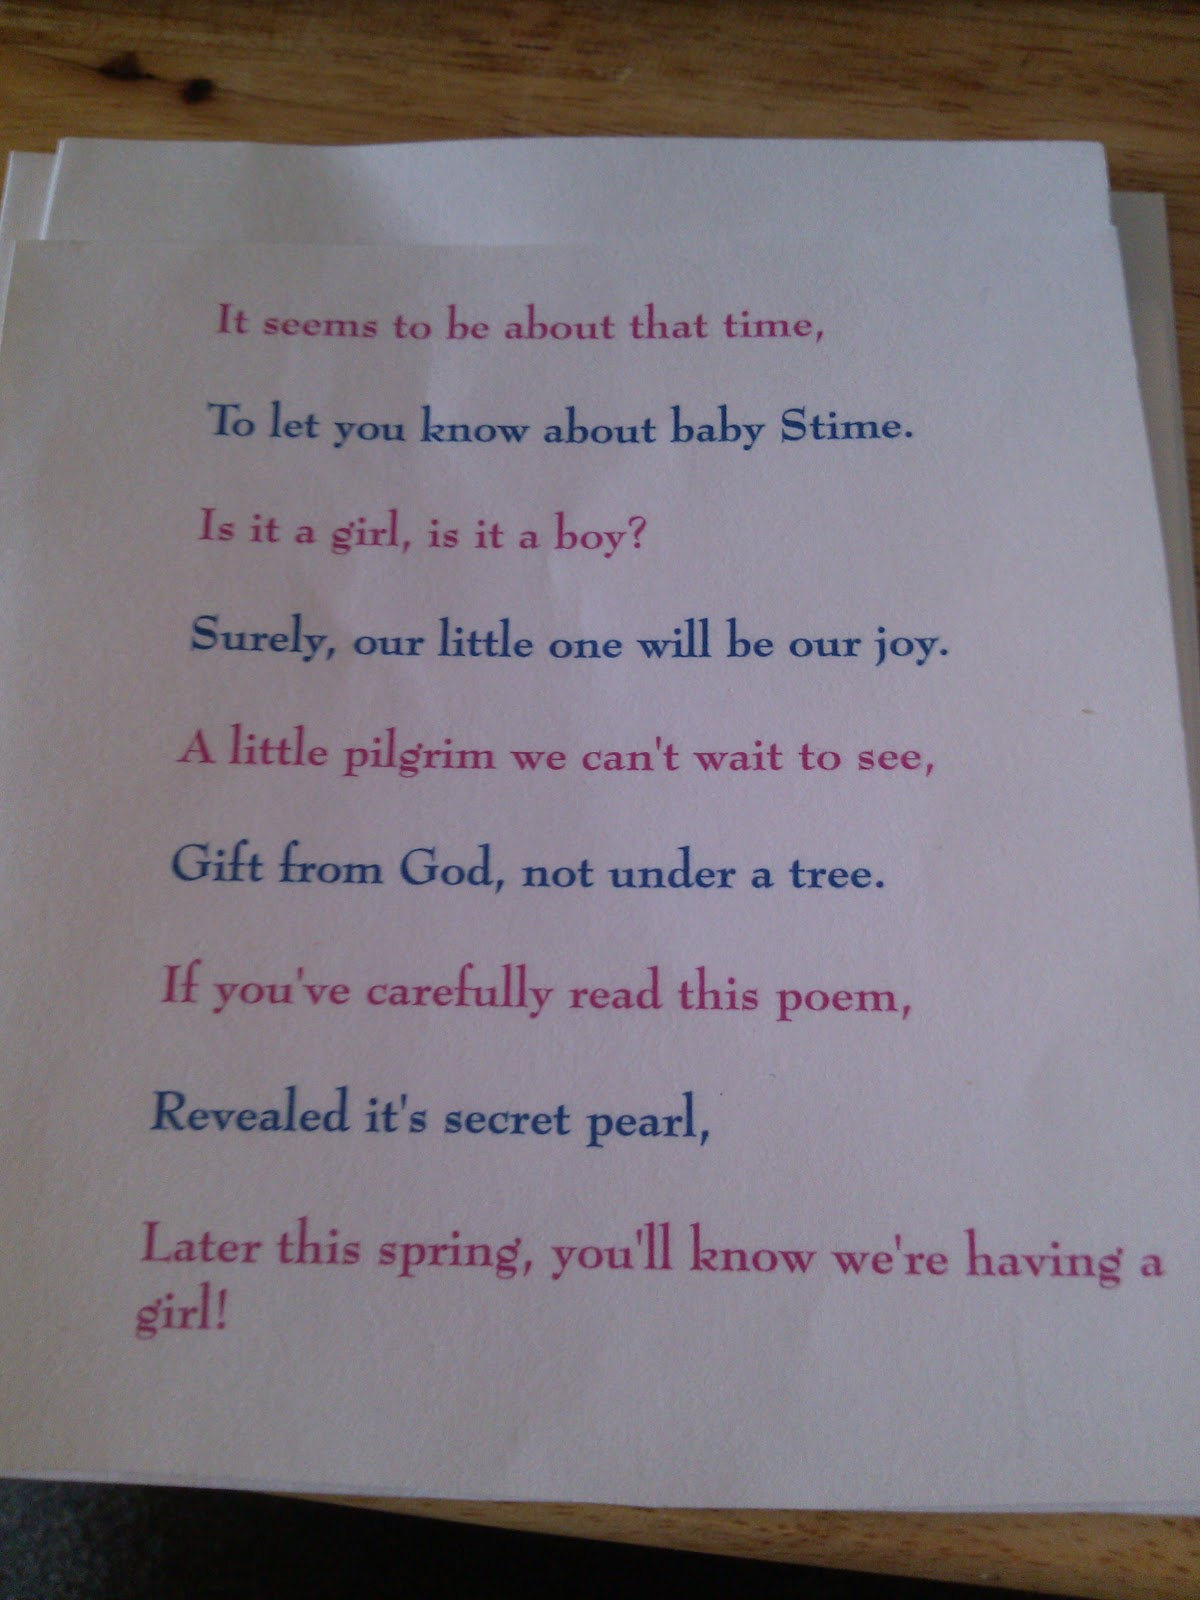 Inside the envelope was the following poem: